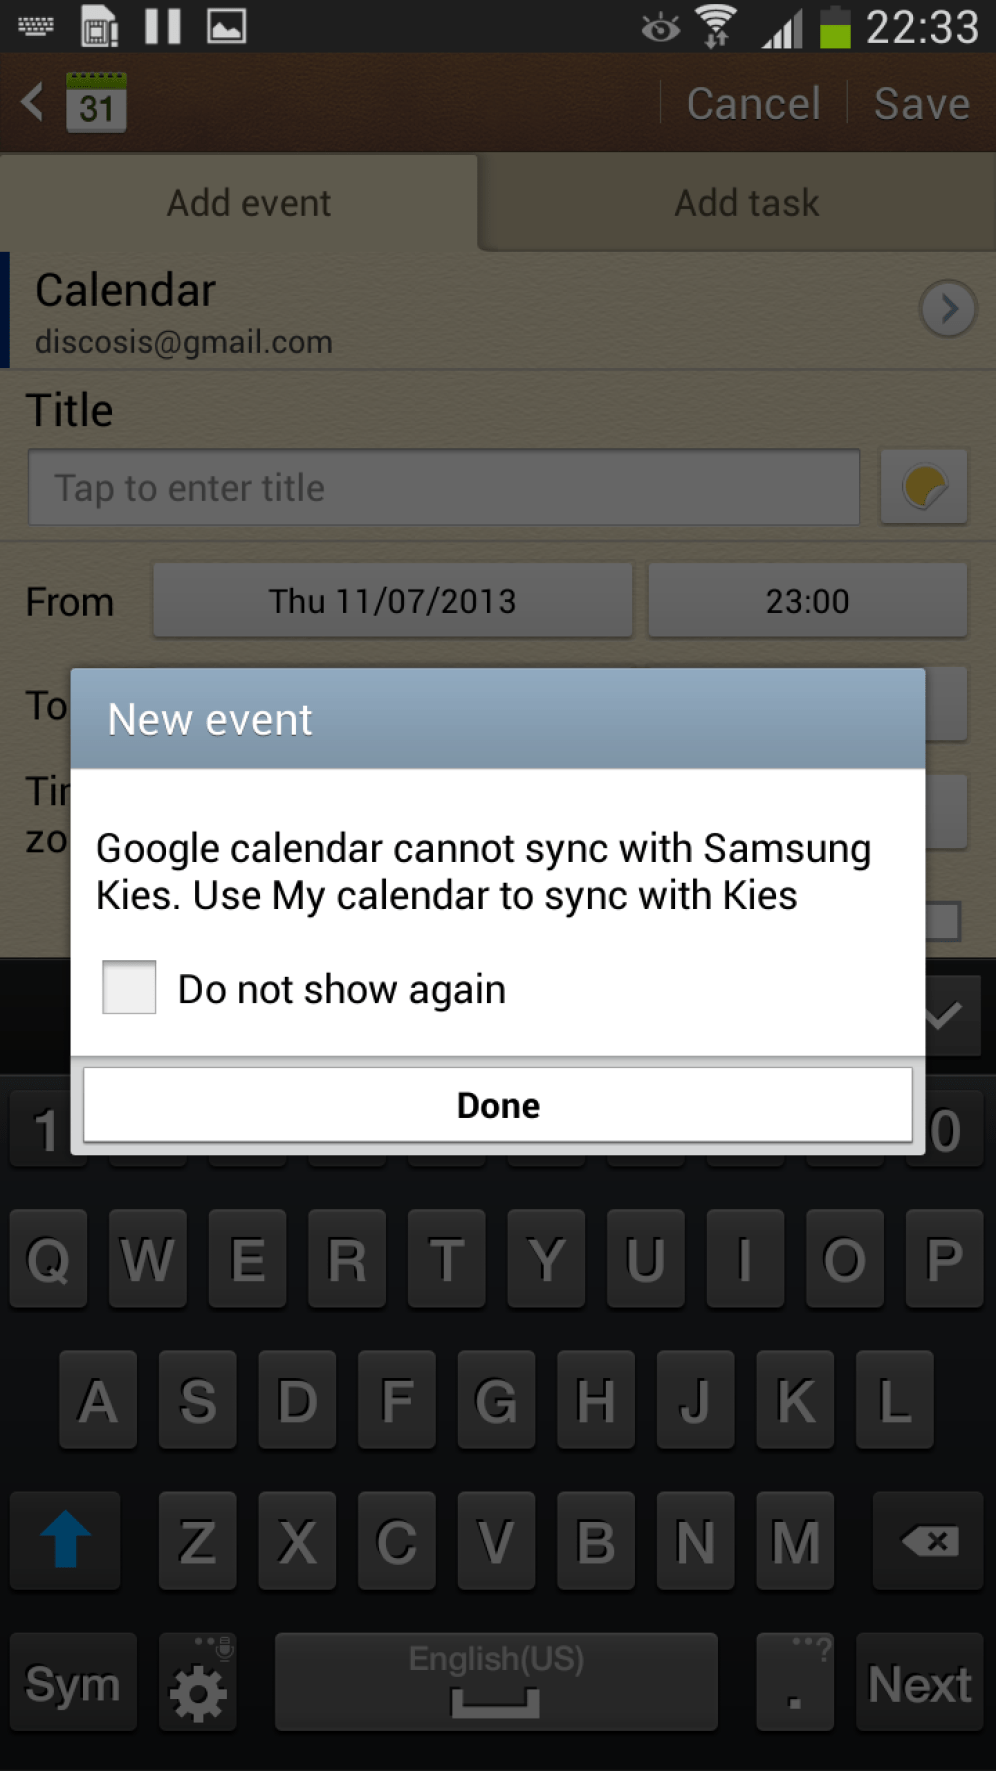 I tried to create a new calendar event and this dialog came up. I actually have no idea what any of it means.